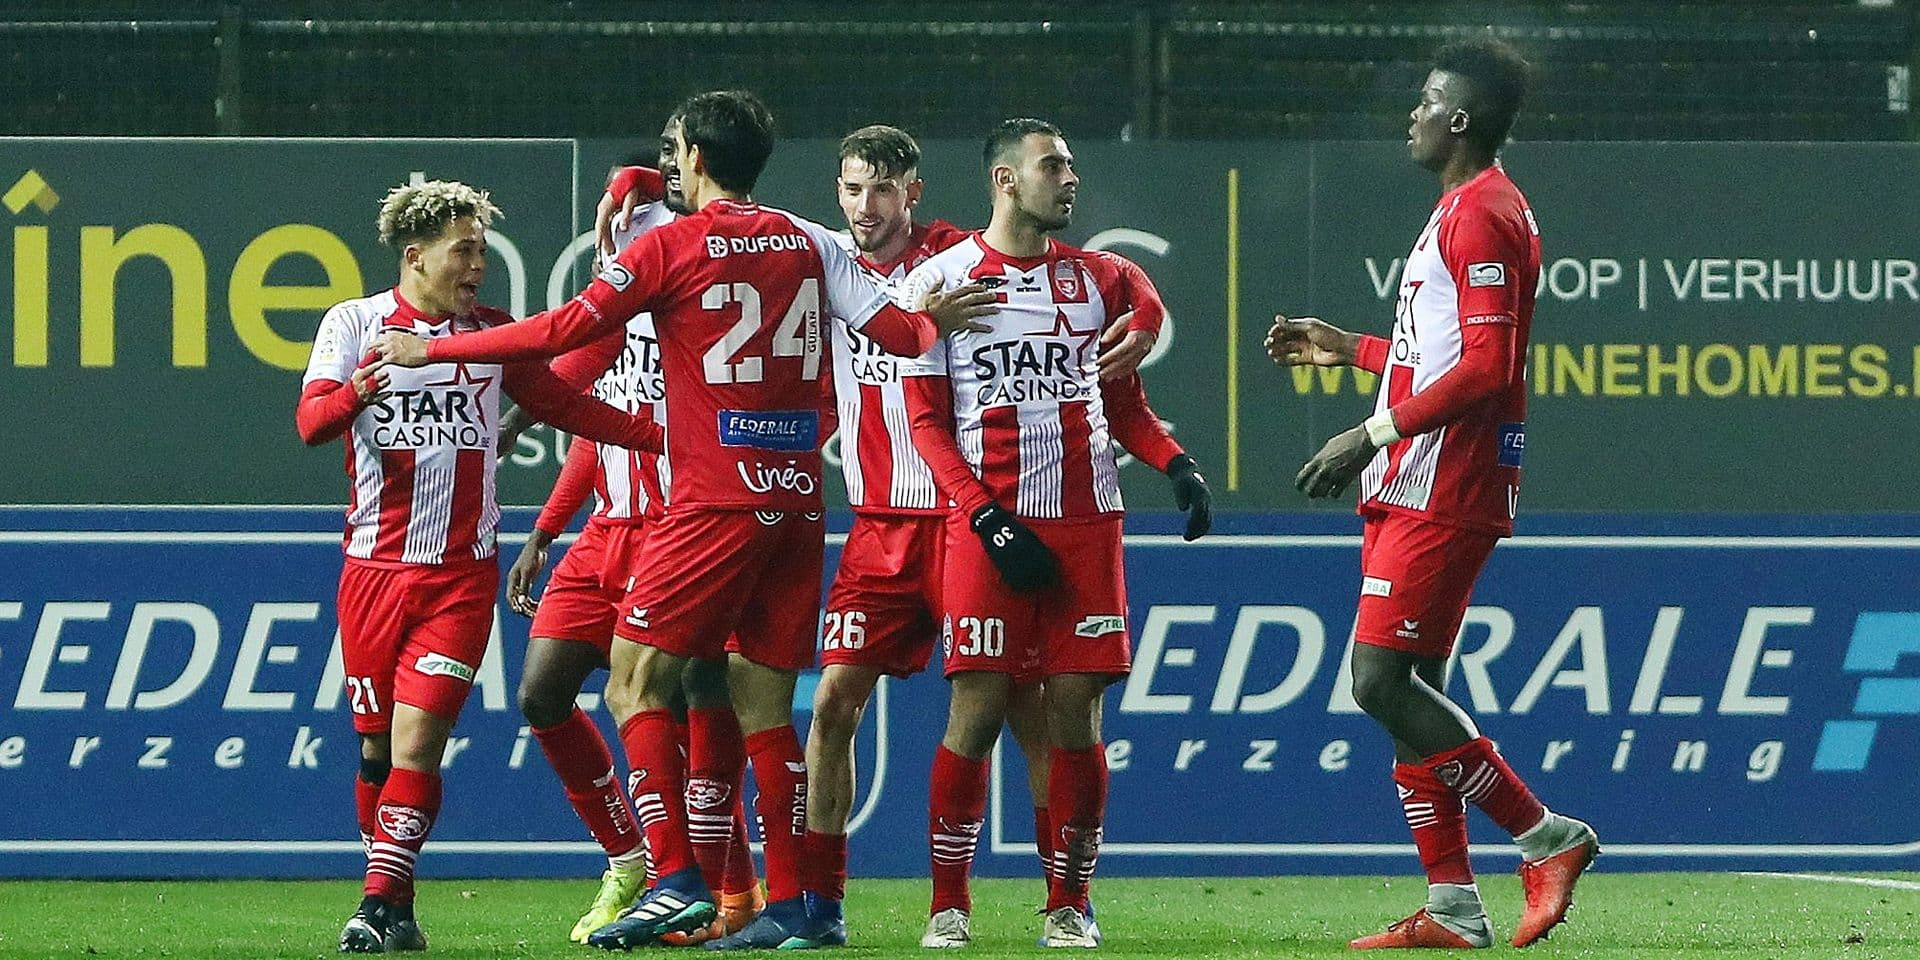 Mouscron's Manuel Benson celebrate during the soccer match between Waasland-Beveren and Royal Excel Mouscron, Saturday 24 November 2018 in Beveren-Waas, on the 16th day of the 'Jupiler Pro League' Belgian soccer championship season 2018-2019. BELGA PHOTO DAVID PINTENS